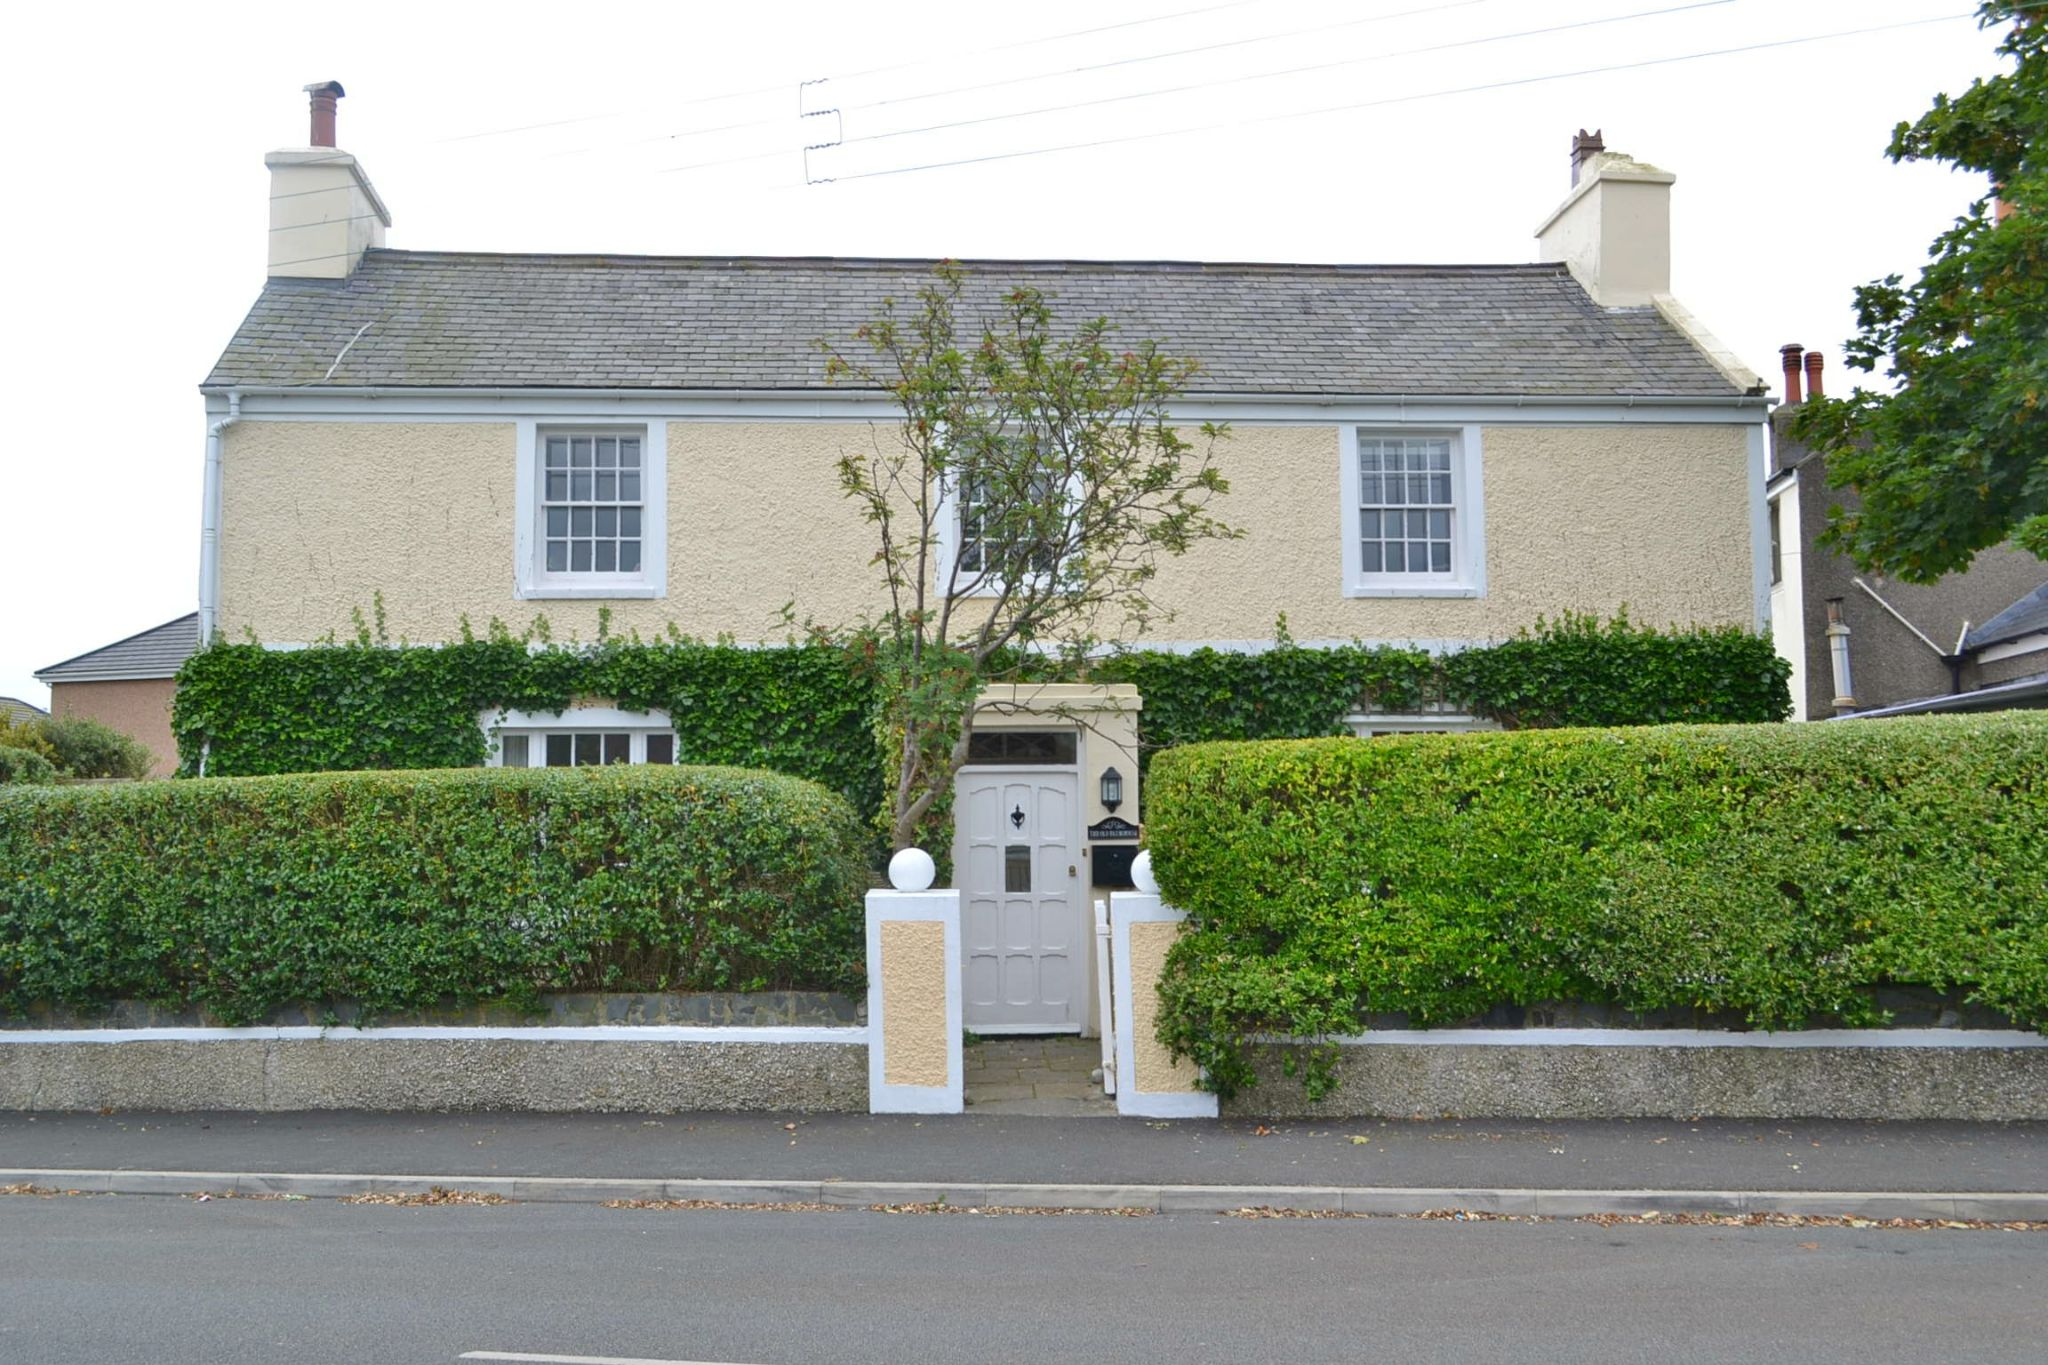 4 bedroom detached house Sold in Port St Mary - Photograph 1